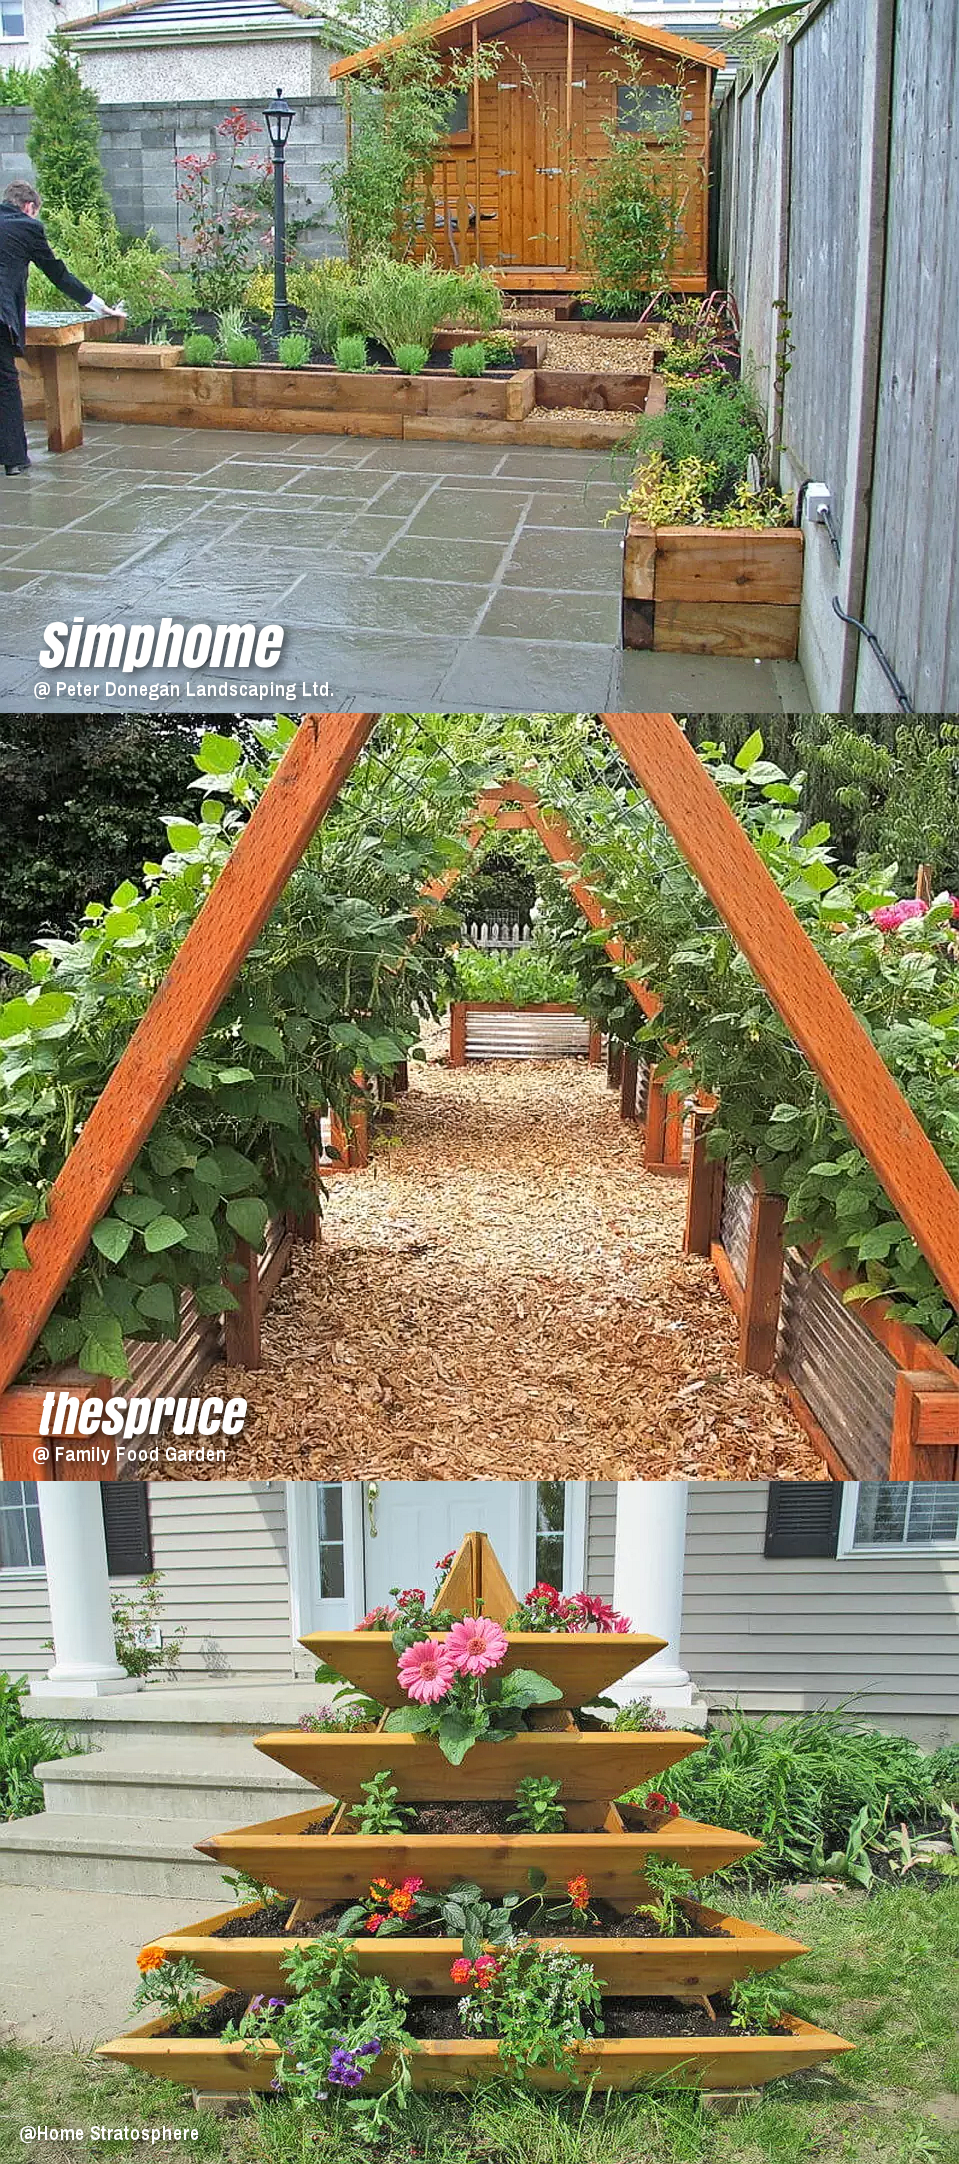 7 Raised Bed Gardening via simphome